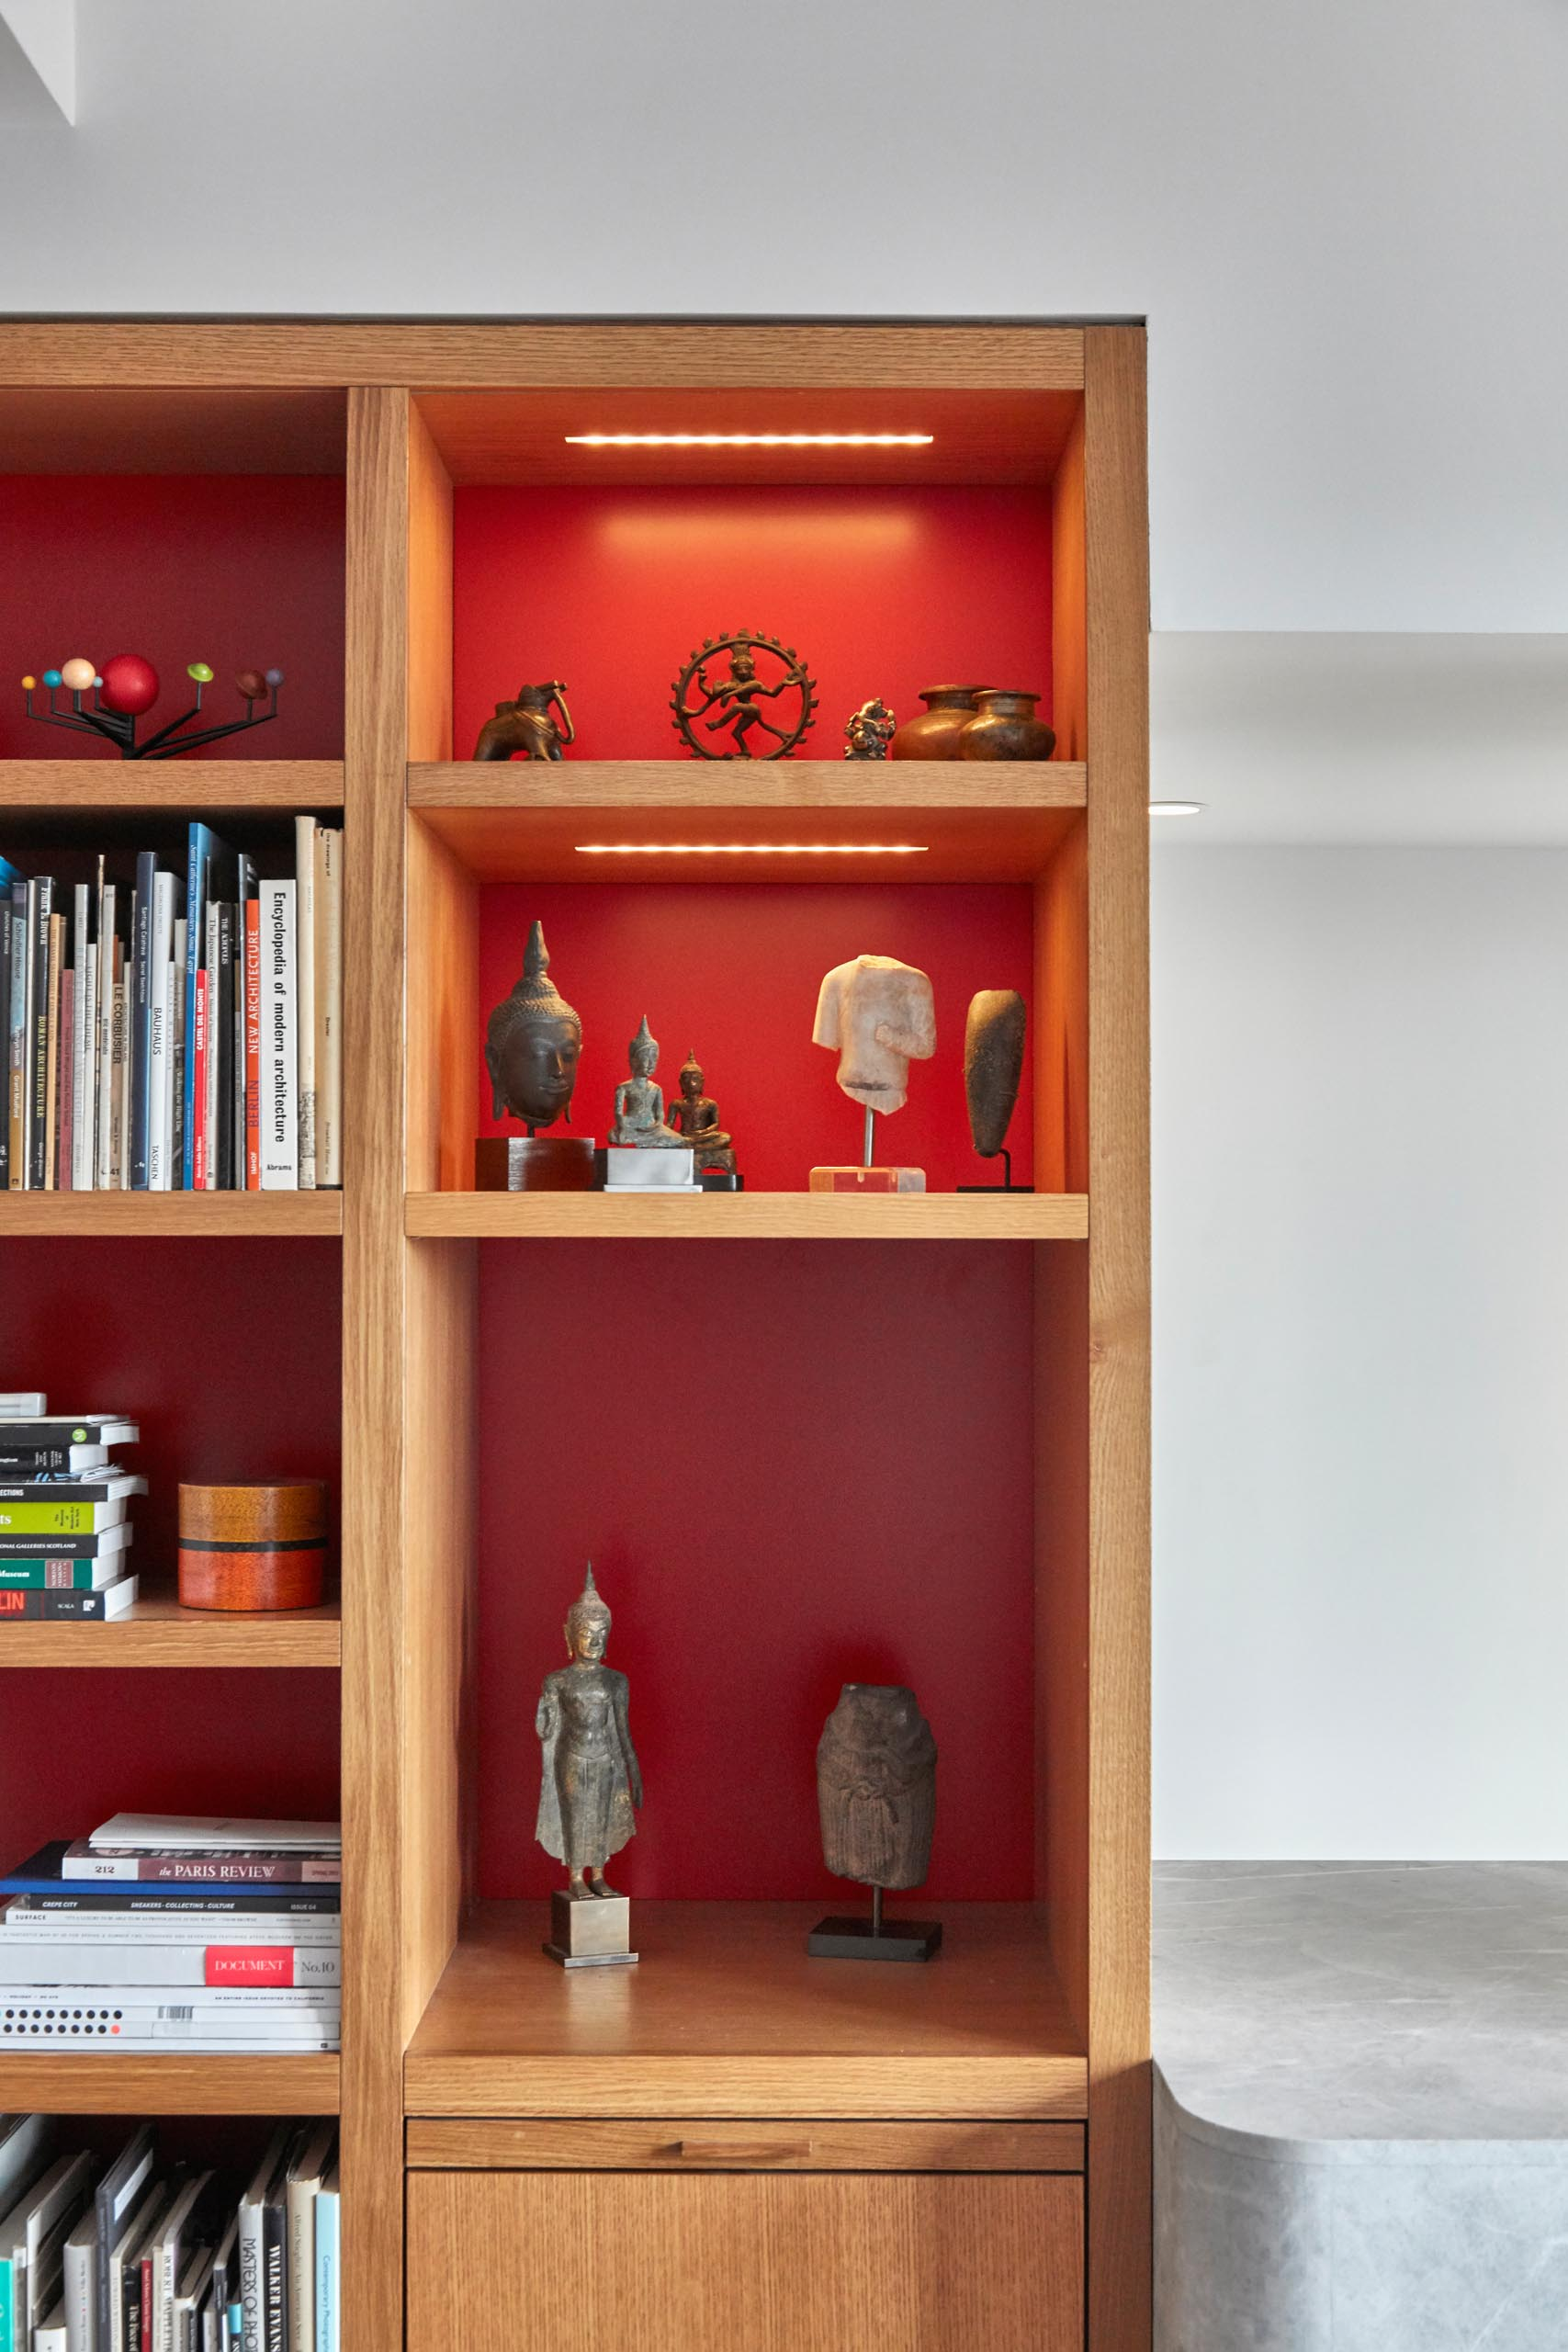 Wood shelves with a red backing and LED lighting.